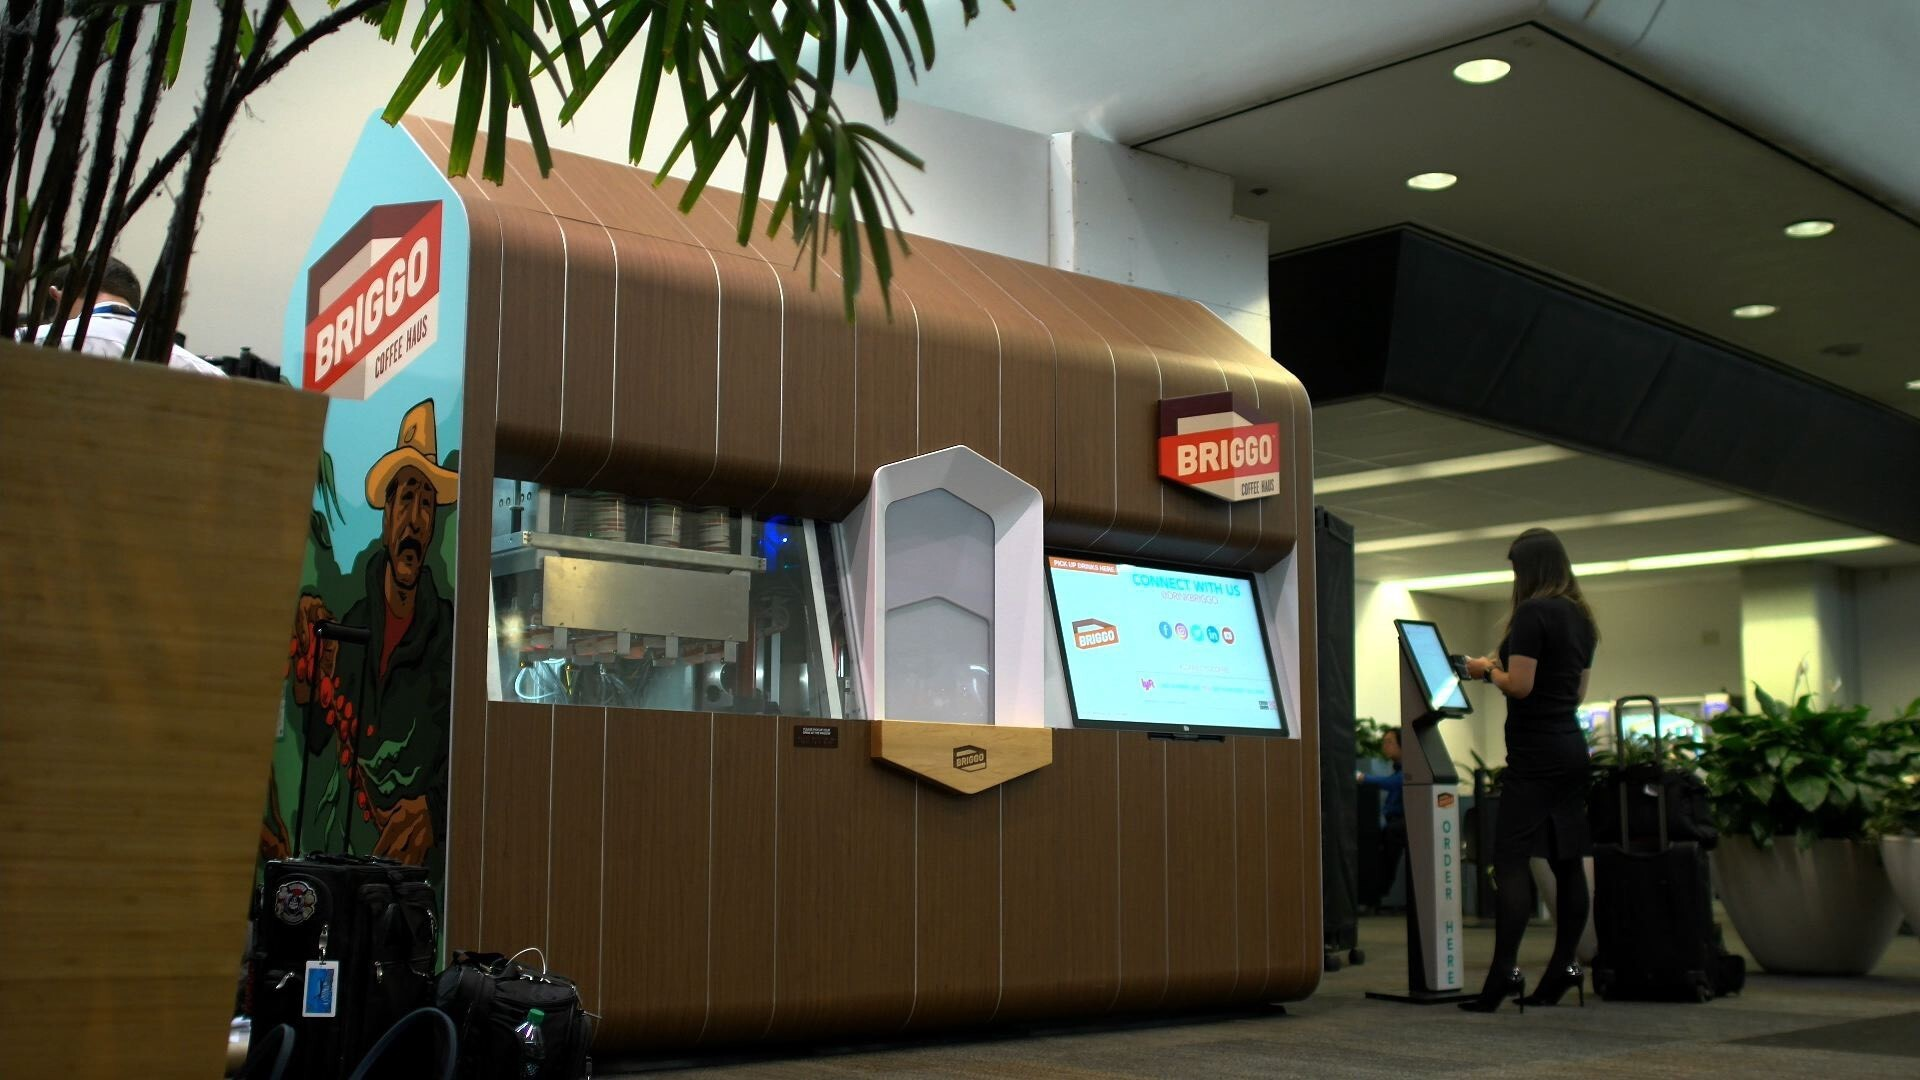 A Briggo Coffee Haus at San Francisco International Airport by Briggo